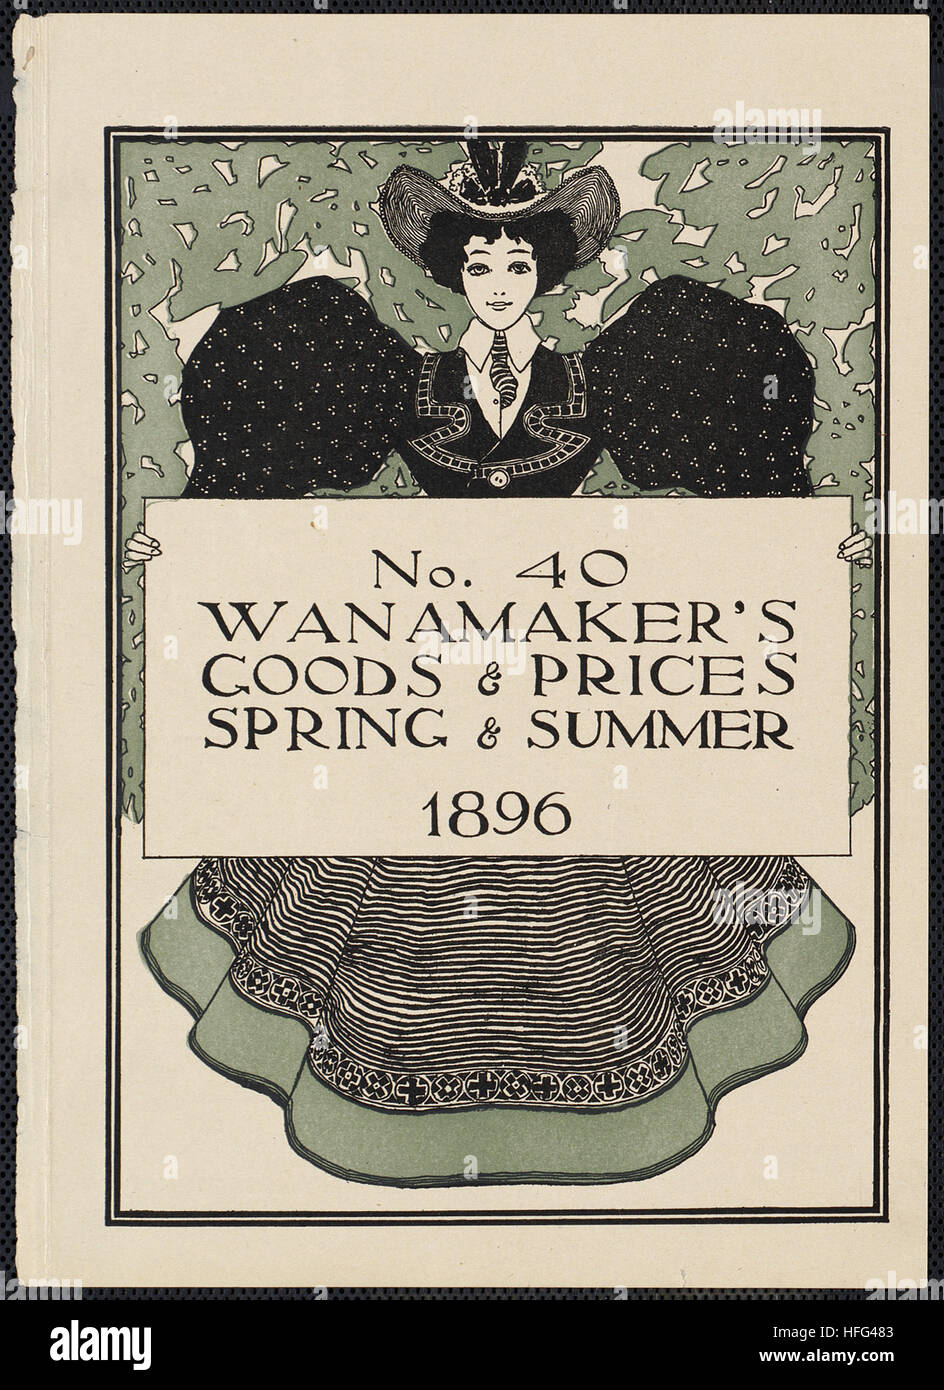 No. 40. Wanamaker's goods & prices, spring & summer 1896 - Stock Image